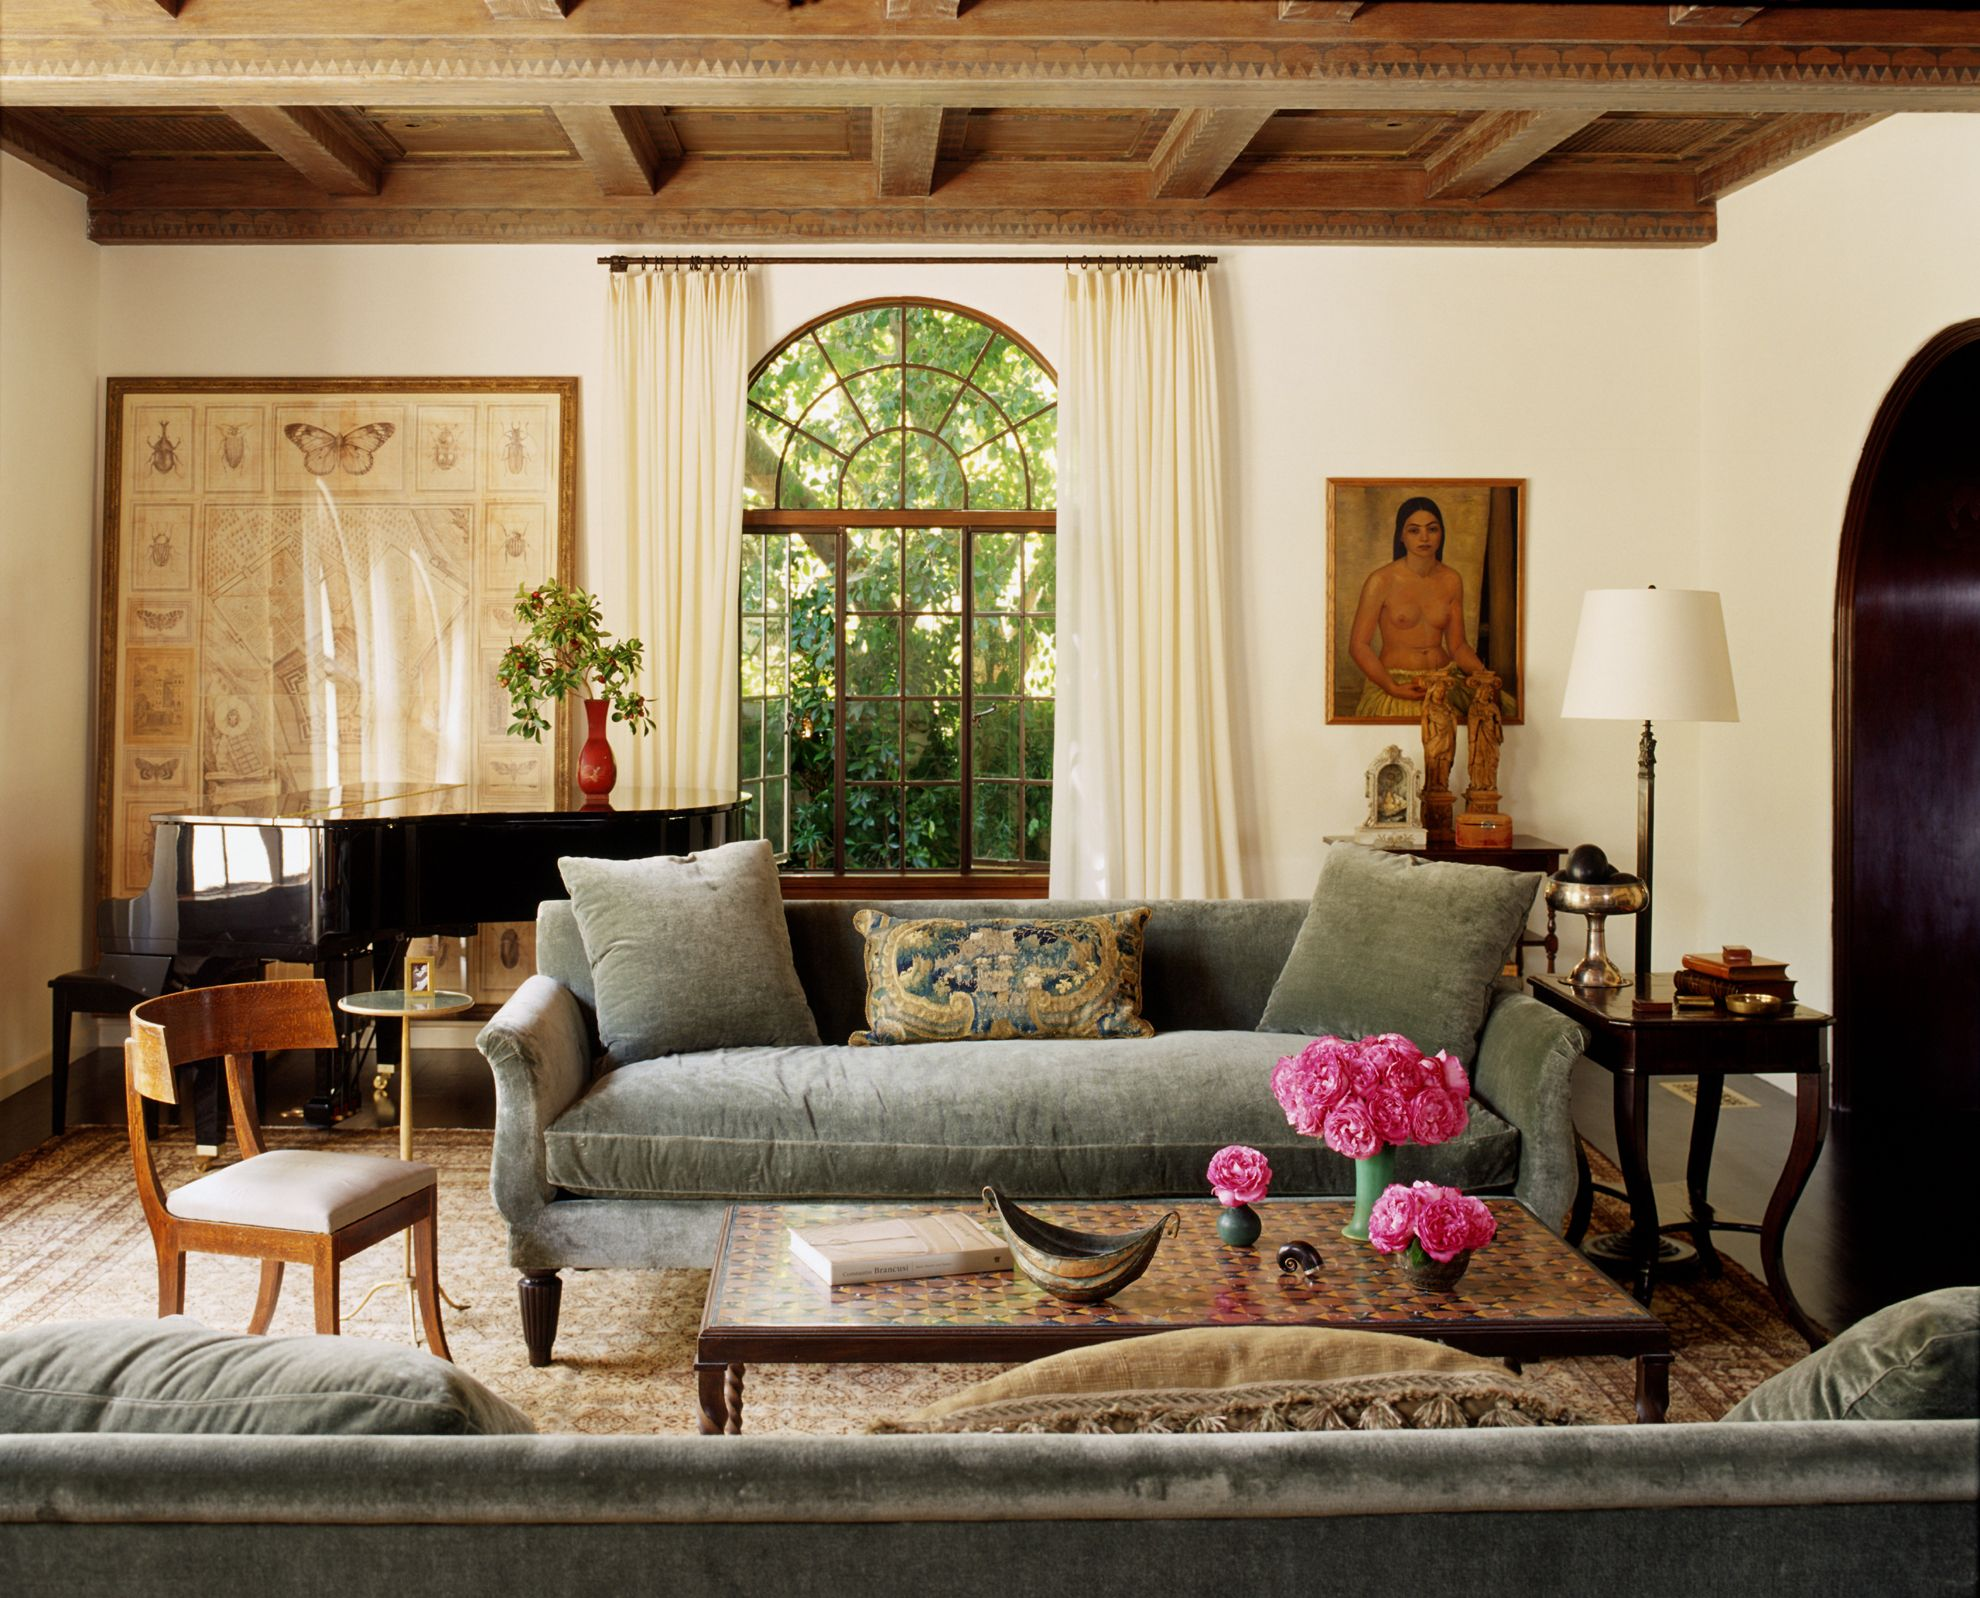 Home Design Lookbook Part - 34: View A Design Image From Kerry Joyceu0027s Lookbook On Dering Hall